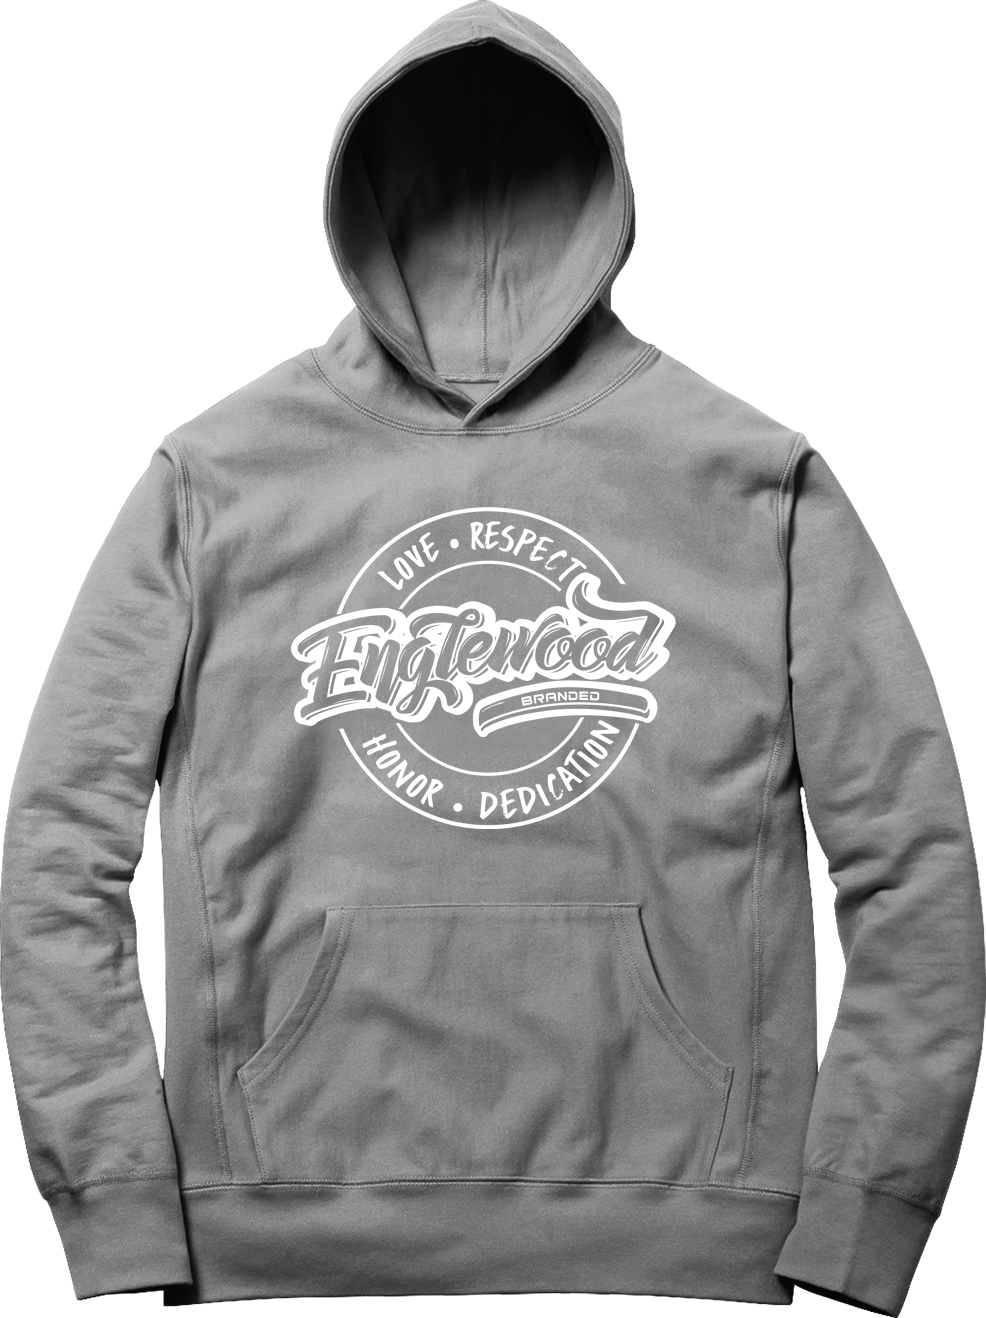 Love Respect Honor Dedication Hoodie (Grey/ White)